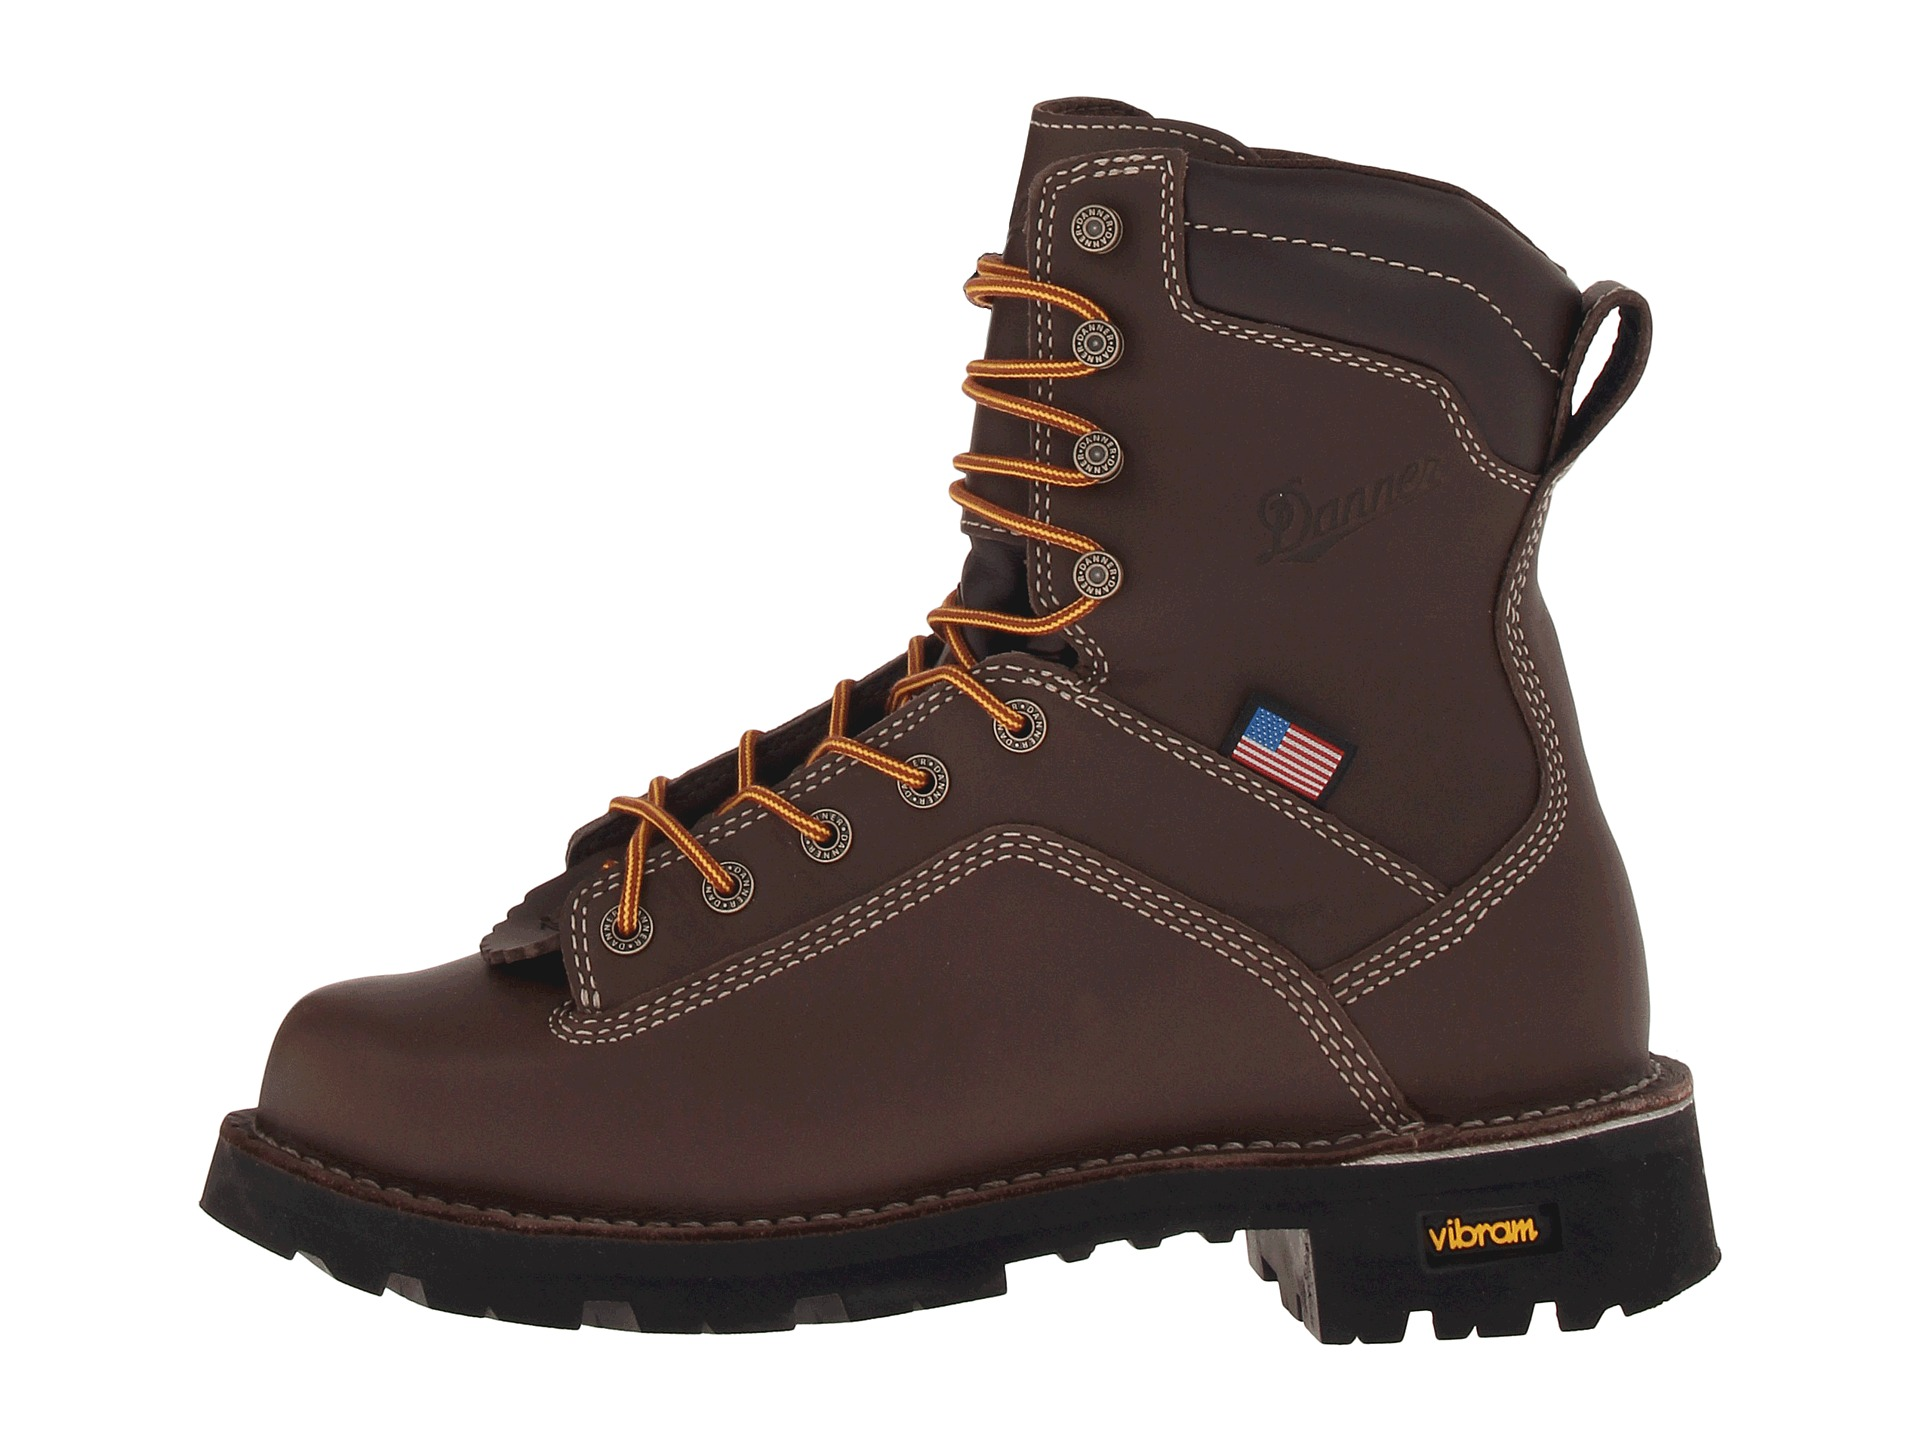 Danner Quarry USA - Zappos.com Free Shipping BOTH Ways